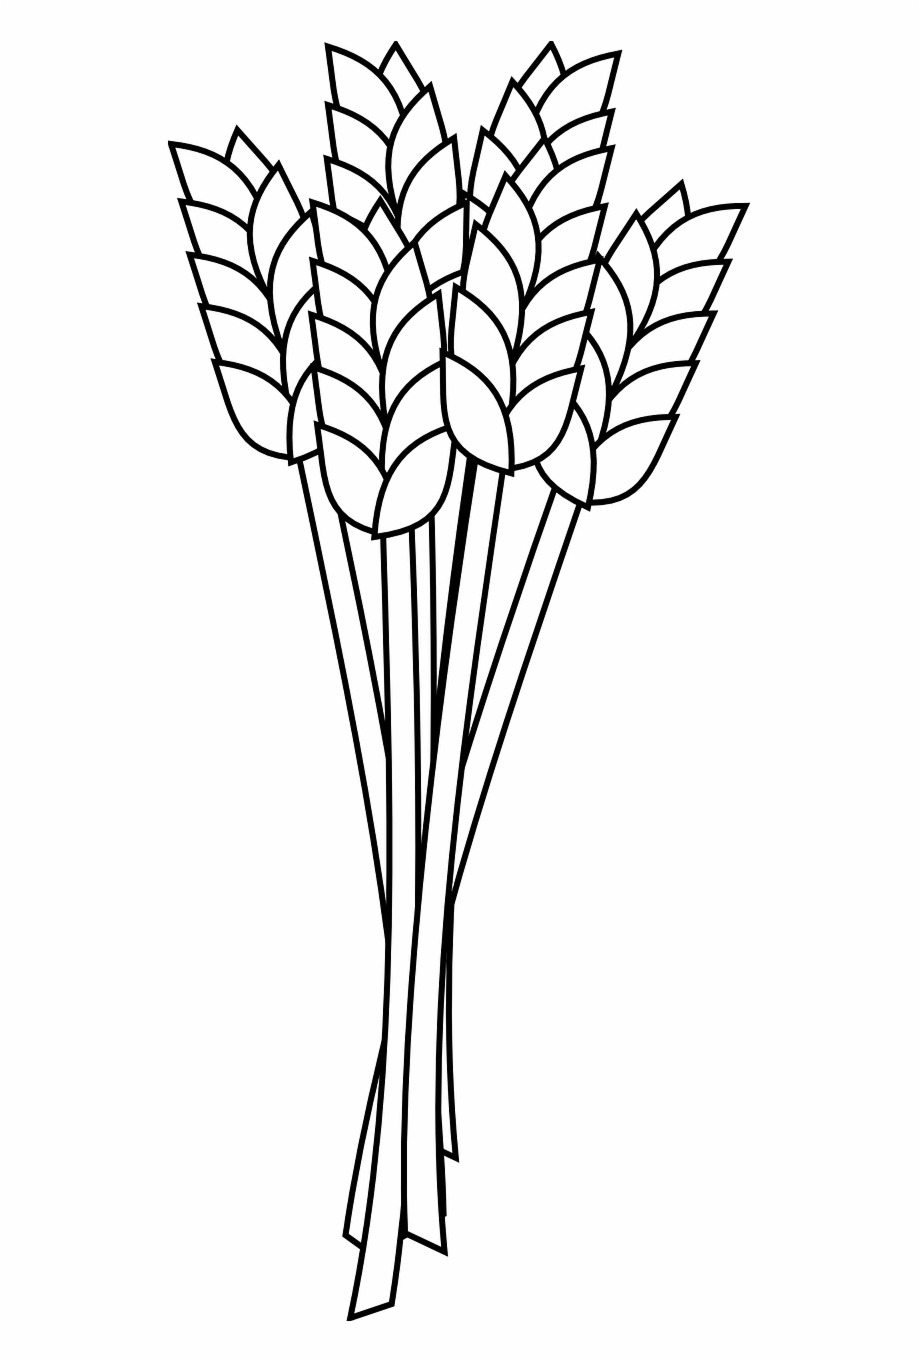 Grain clipart outline. Wheat agriculture crop png